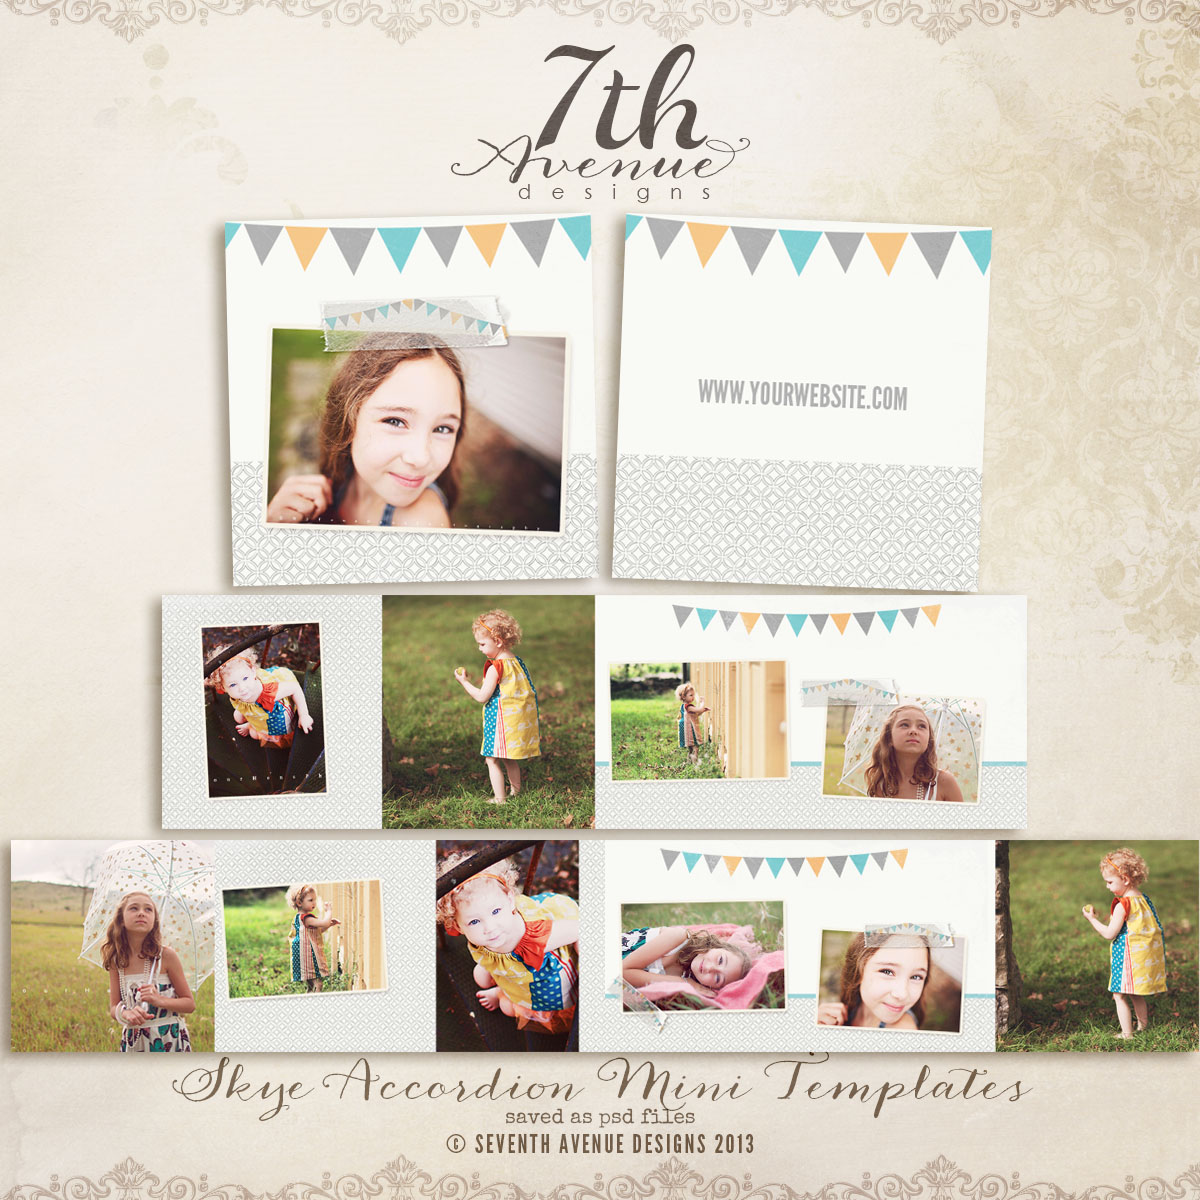 Skye 3x3 Accordion mini templates